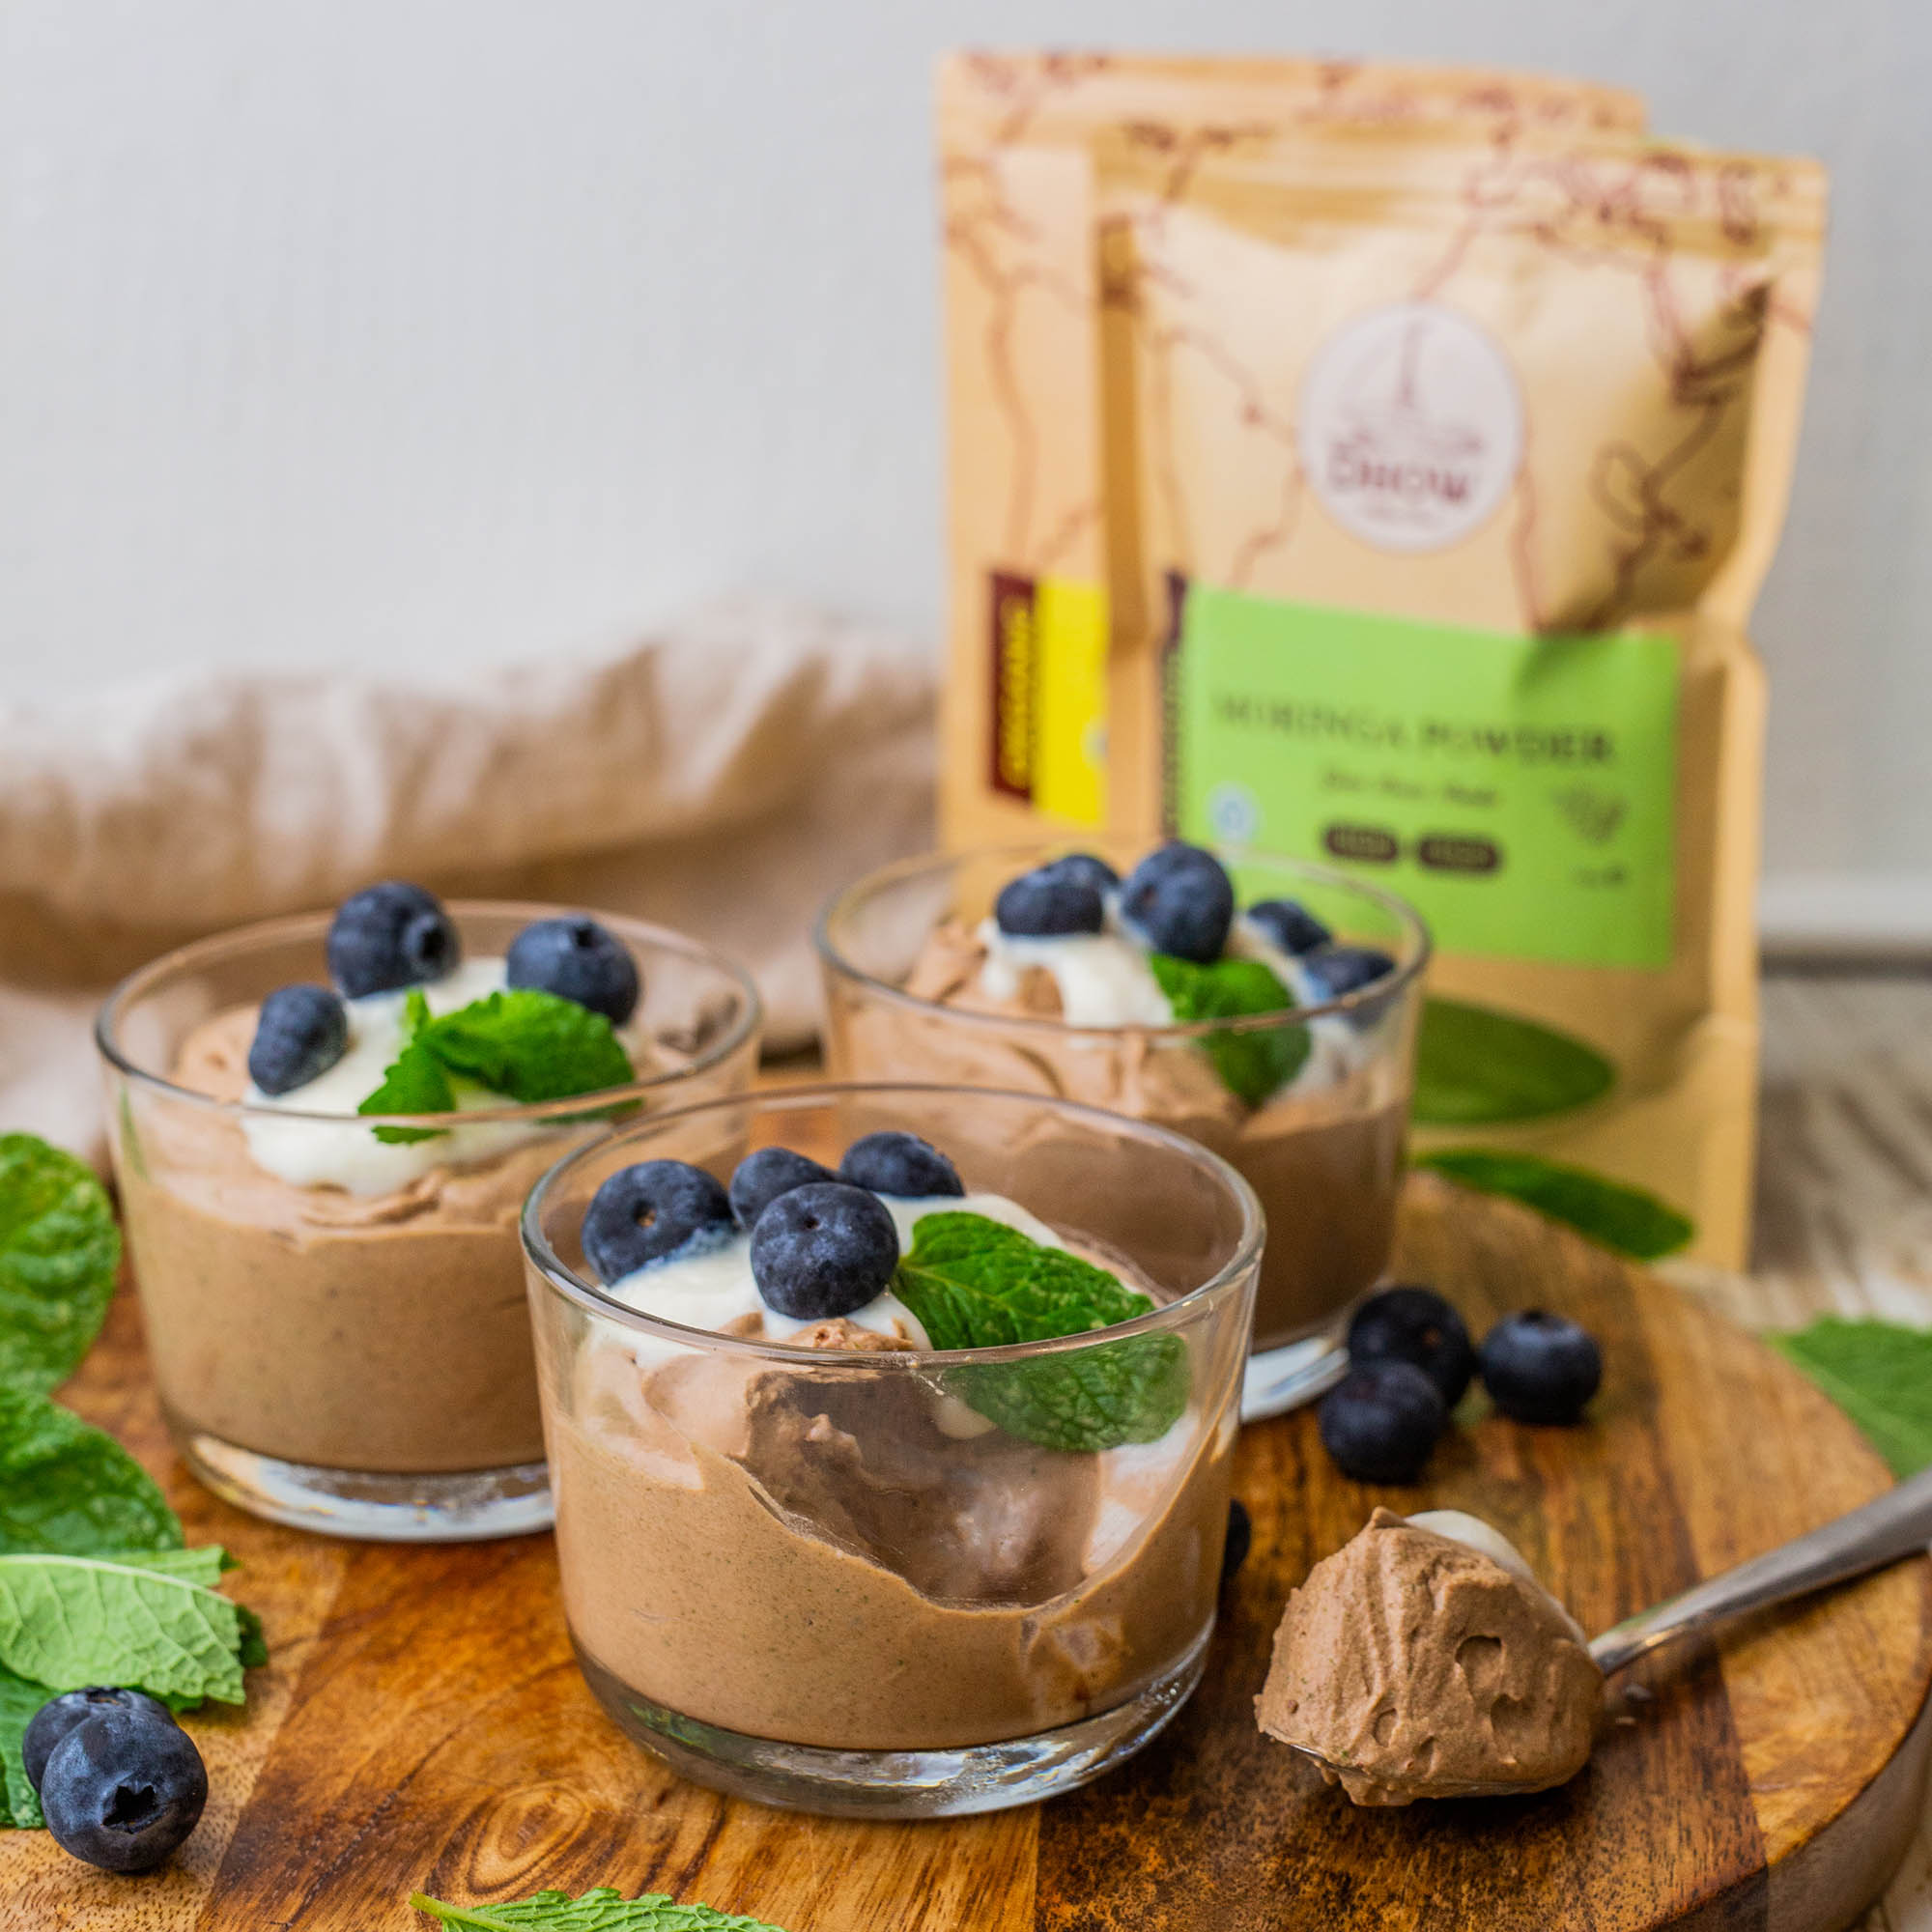 Vegan Moringa Peppermint Chocolate Mousse and Benefits of Moringa for Women